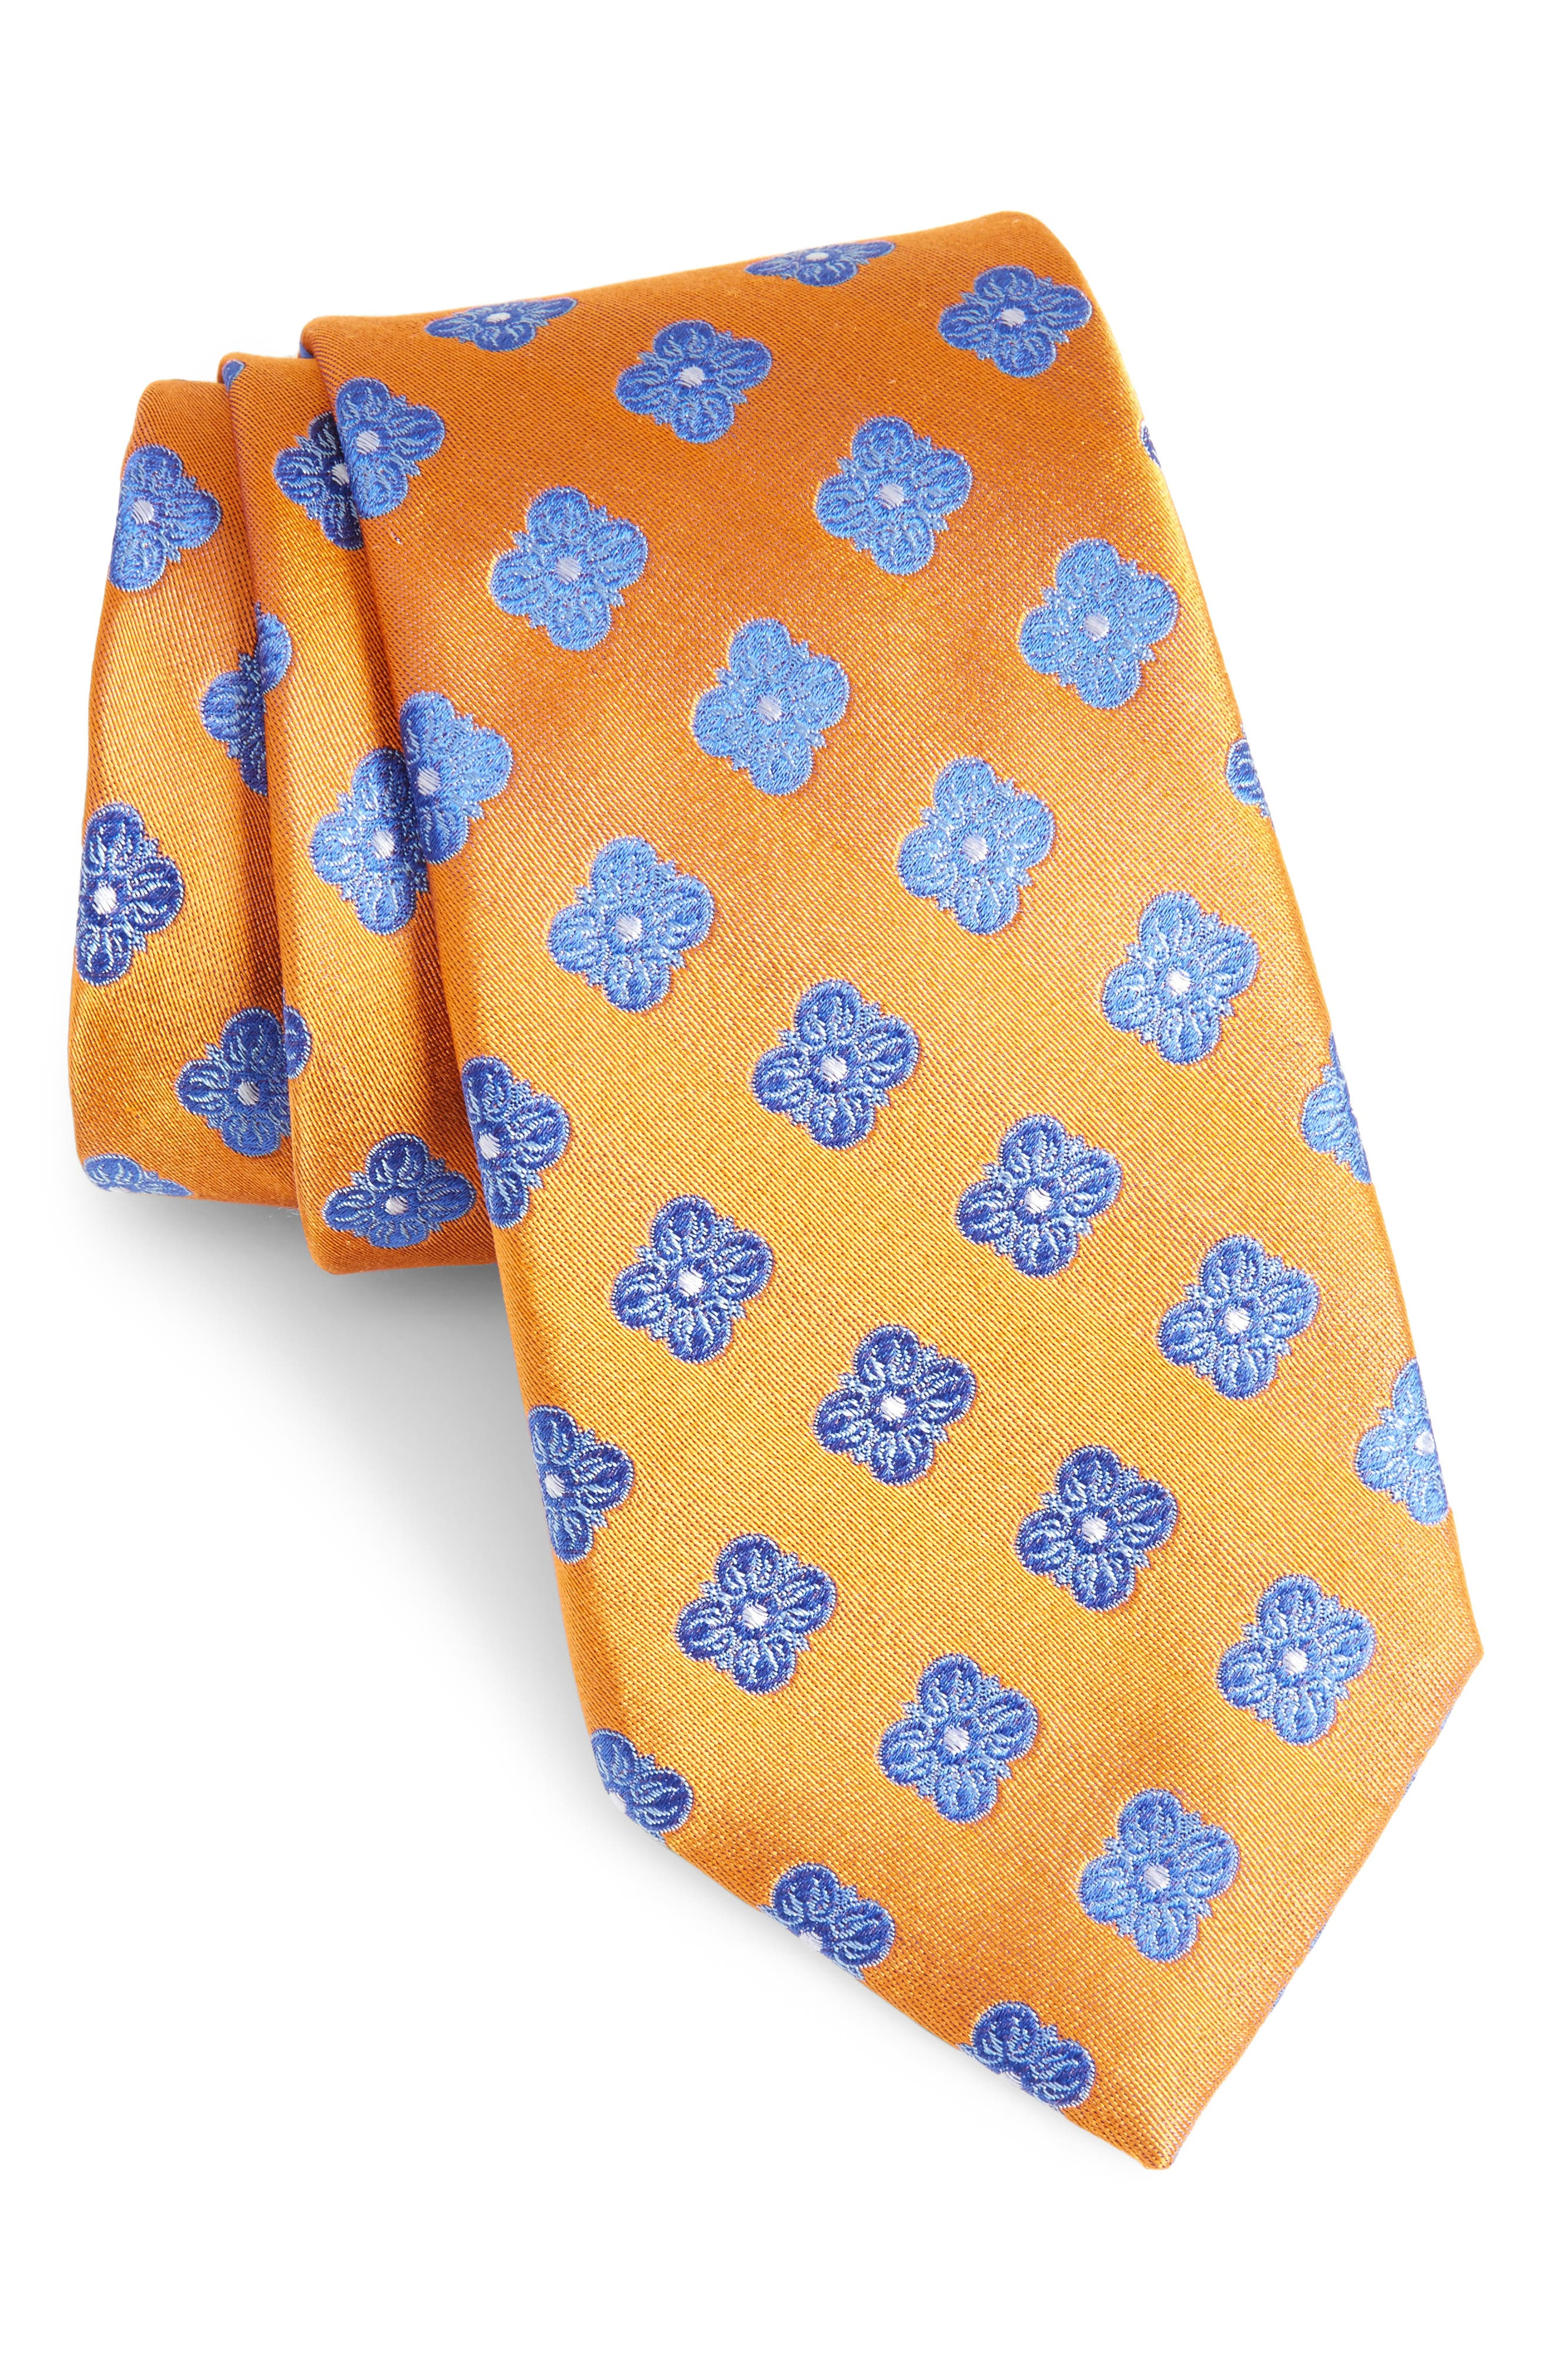 Cameron Floral Medallion Silk Tie,                         Main,                         color, Orange